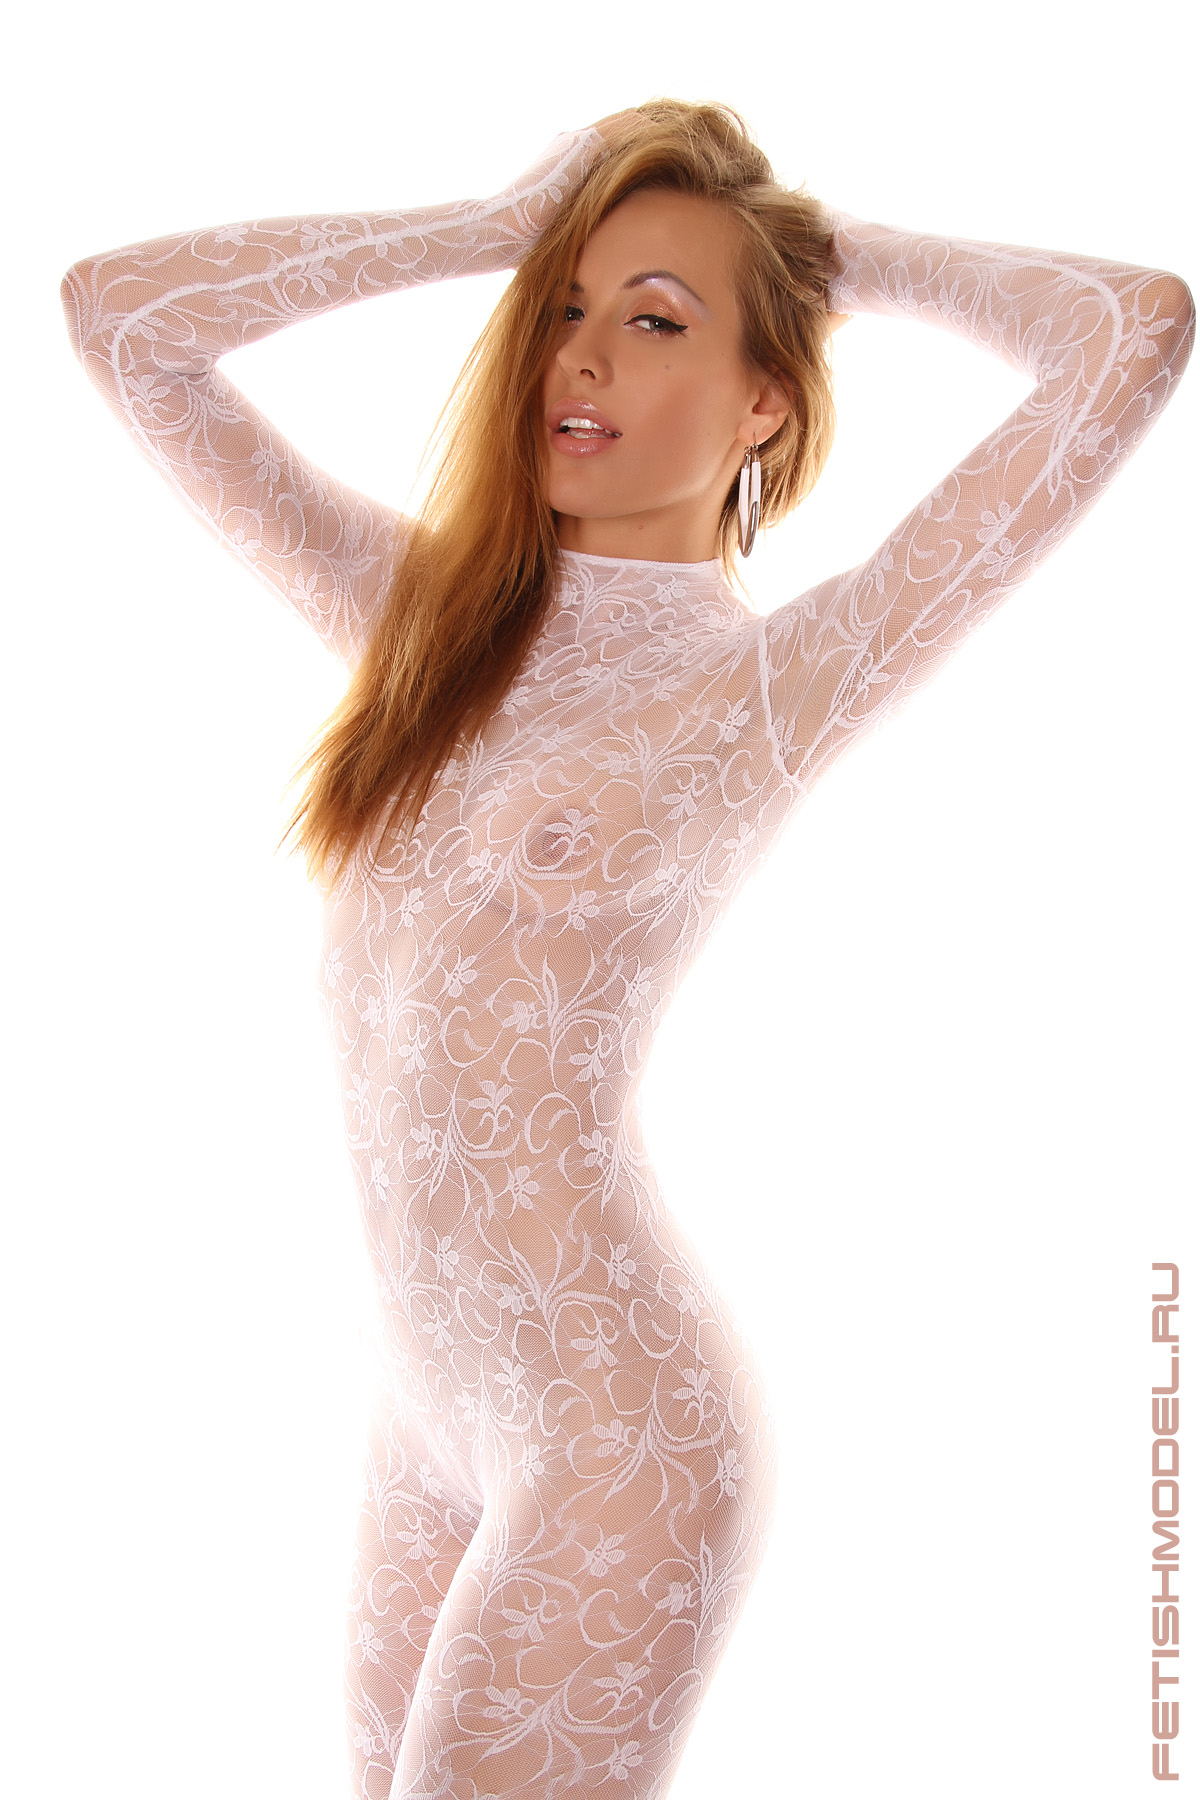 White Lace by agnadeviphotographer